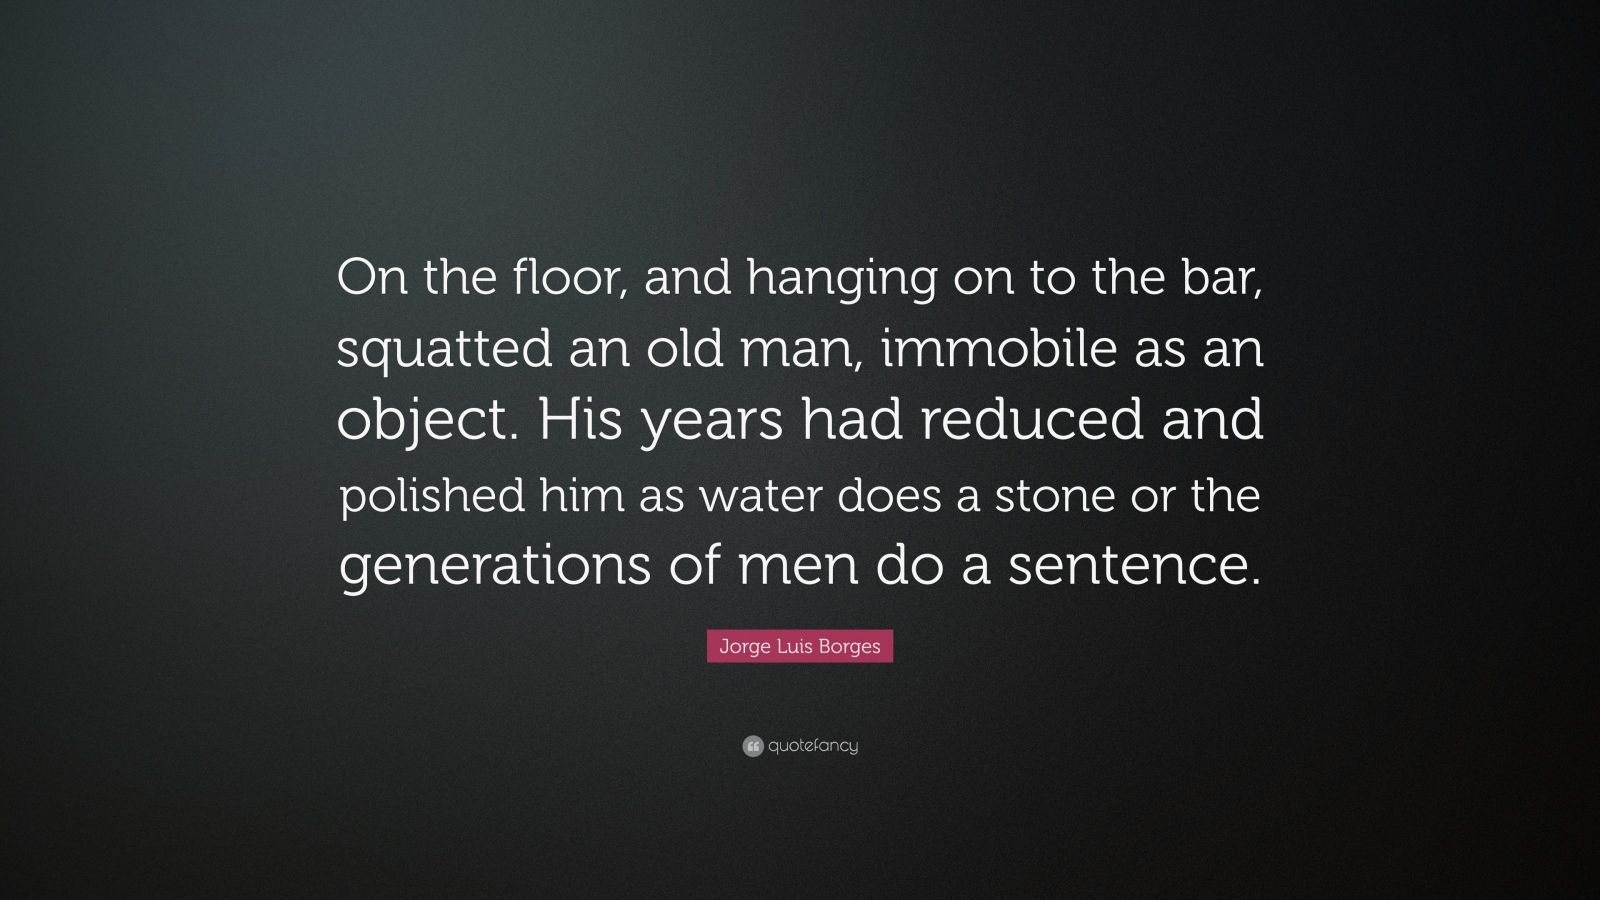 """Jorge Luis Borges Quote: """"On the floor, and hanging on to the bar, squatted an old man, immobile as an object. His years had reduced and polished him as water does a stone or the generations of men do a sentence."""""""